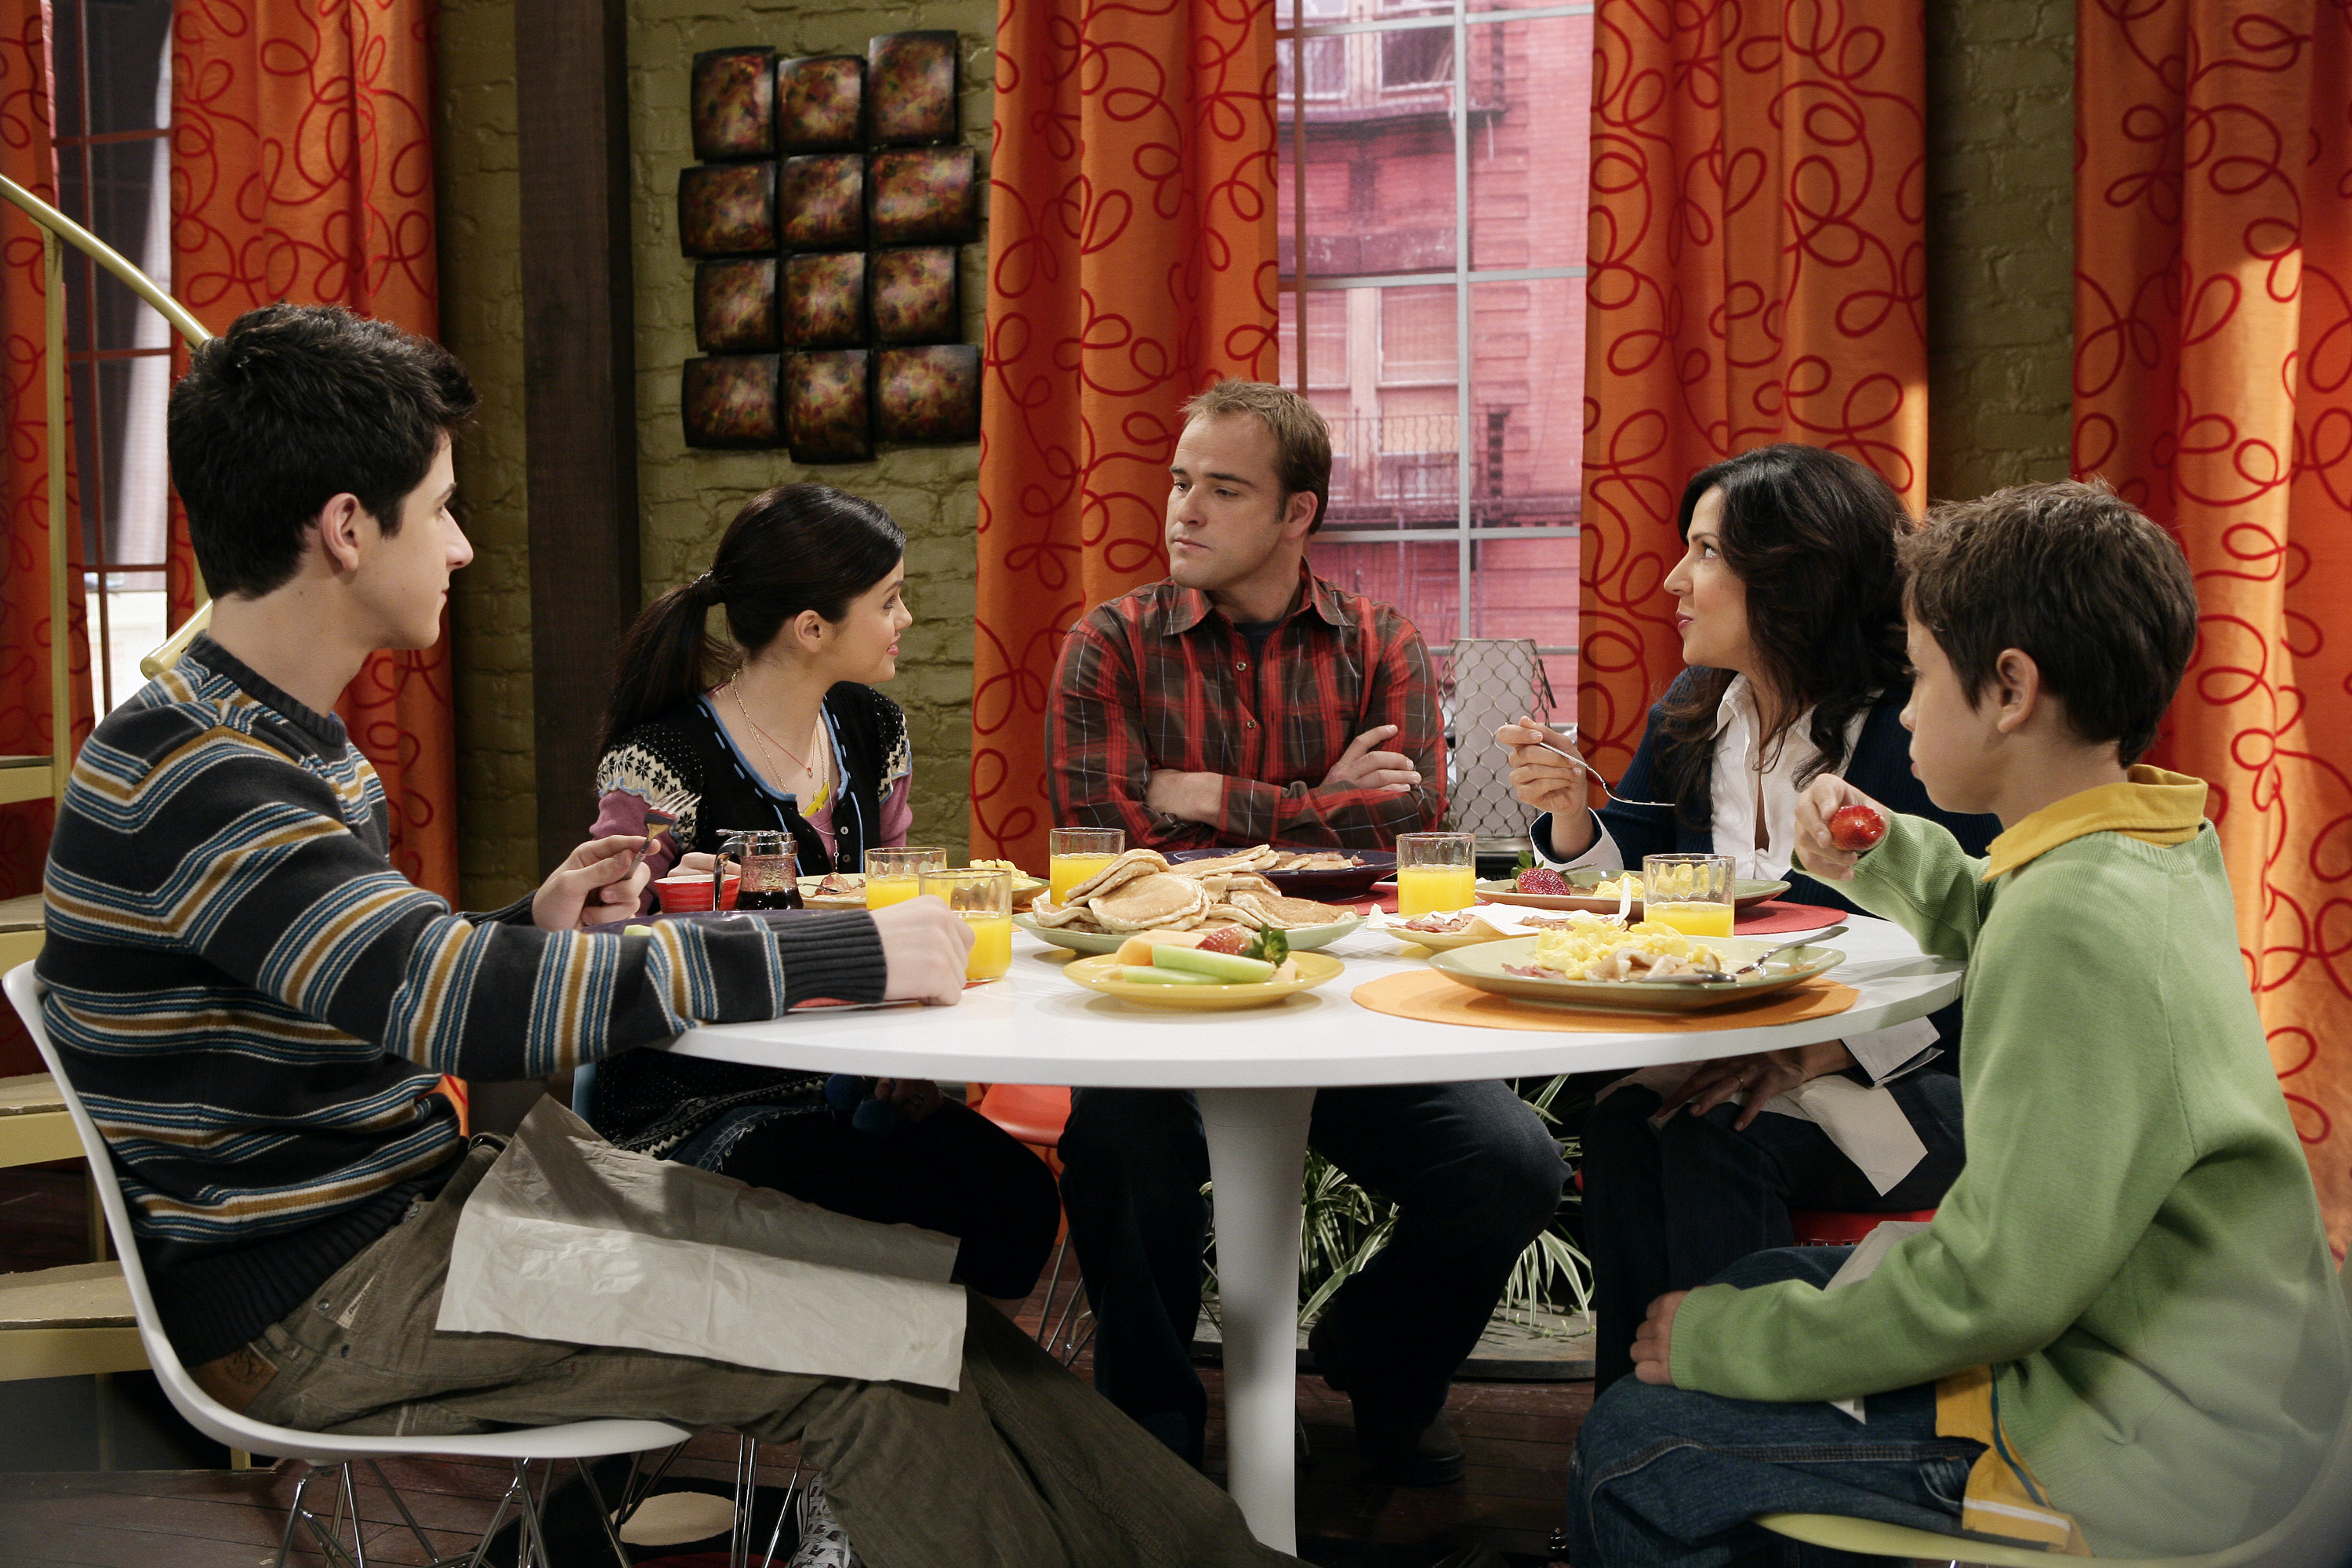 Alex Russo Bedroom Style Ideas. Alex Russo Bedroom On Wizards Of Waverly Place   Bedroom Style Ideas